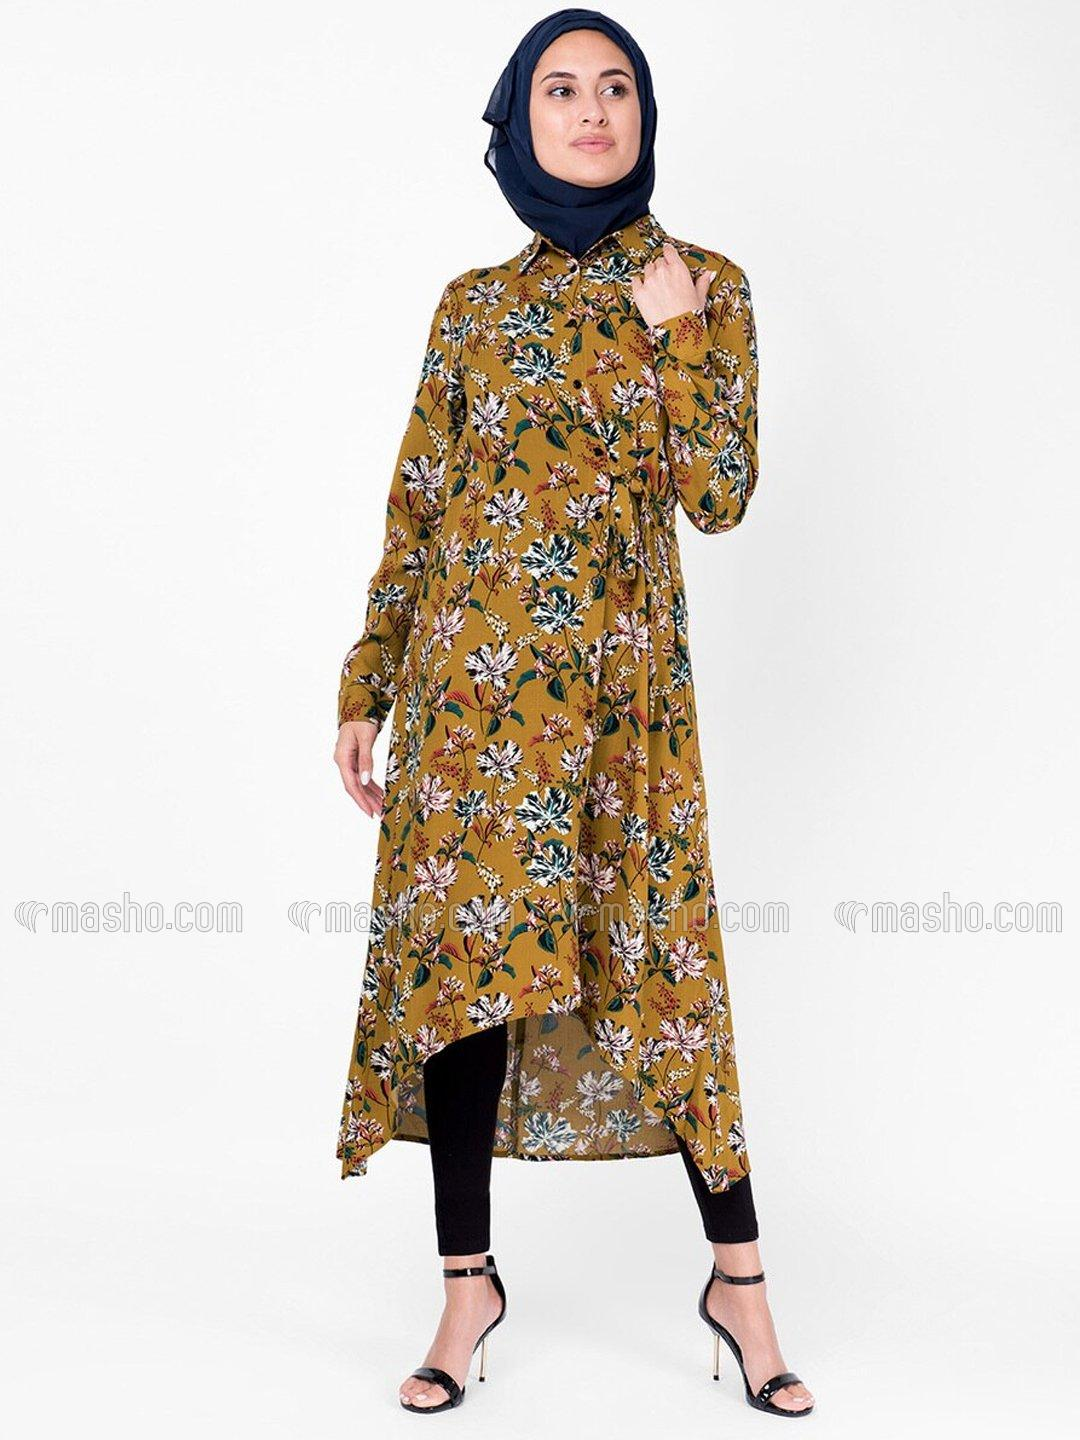 100% Rayon Floral High Low Midi Dress In Mustard